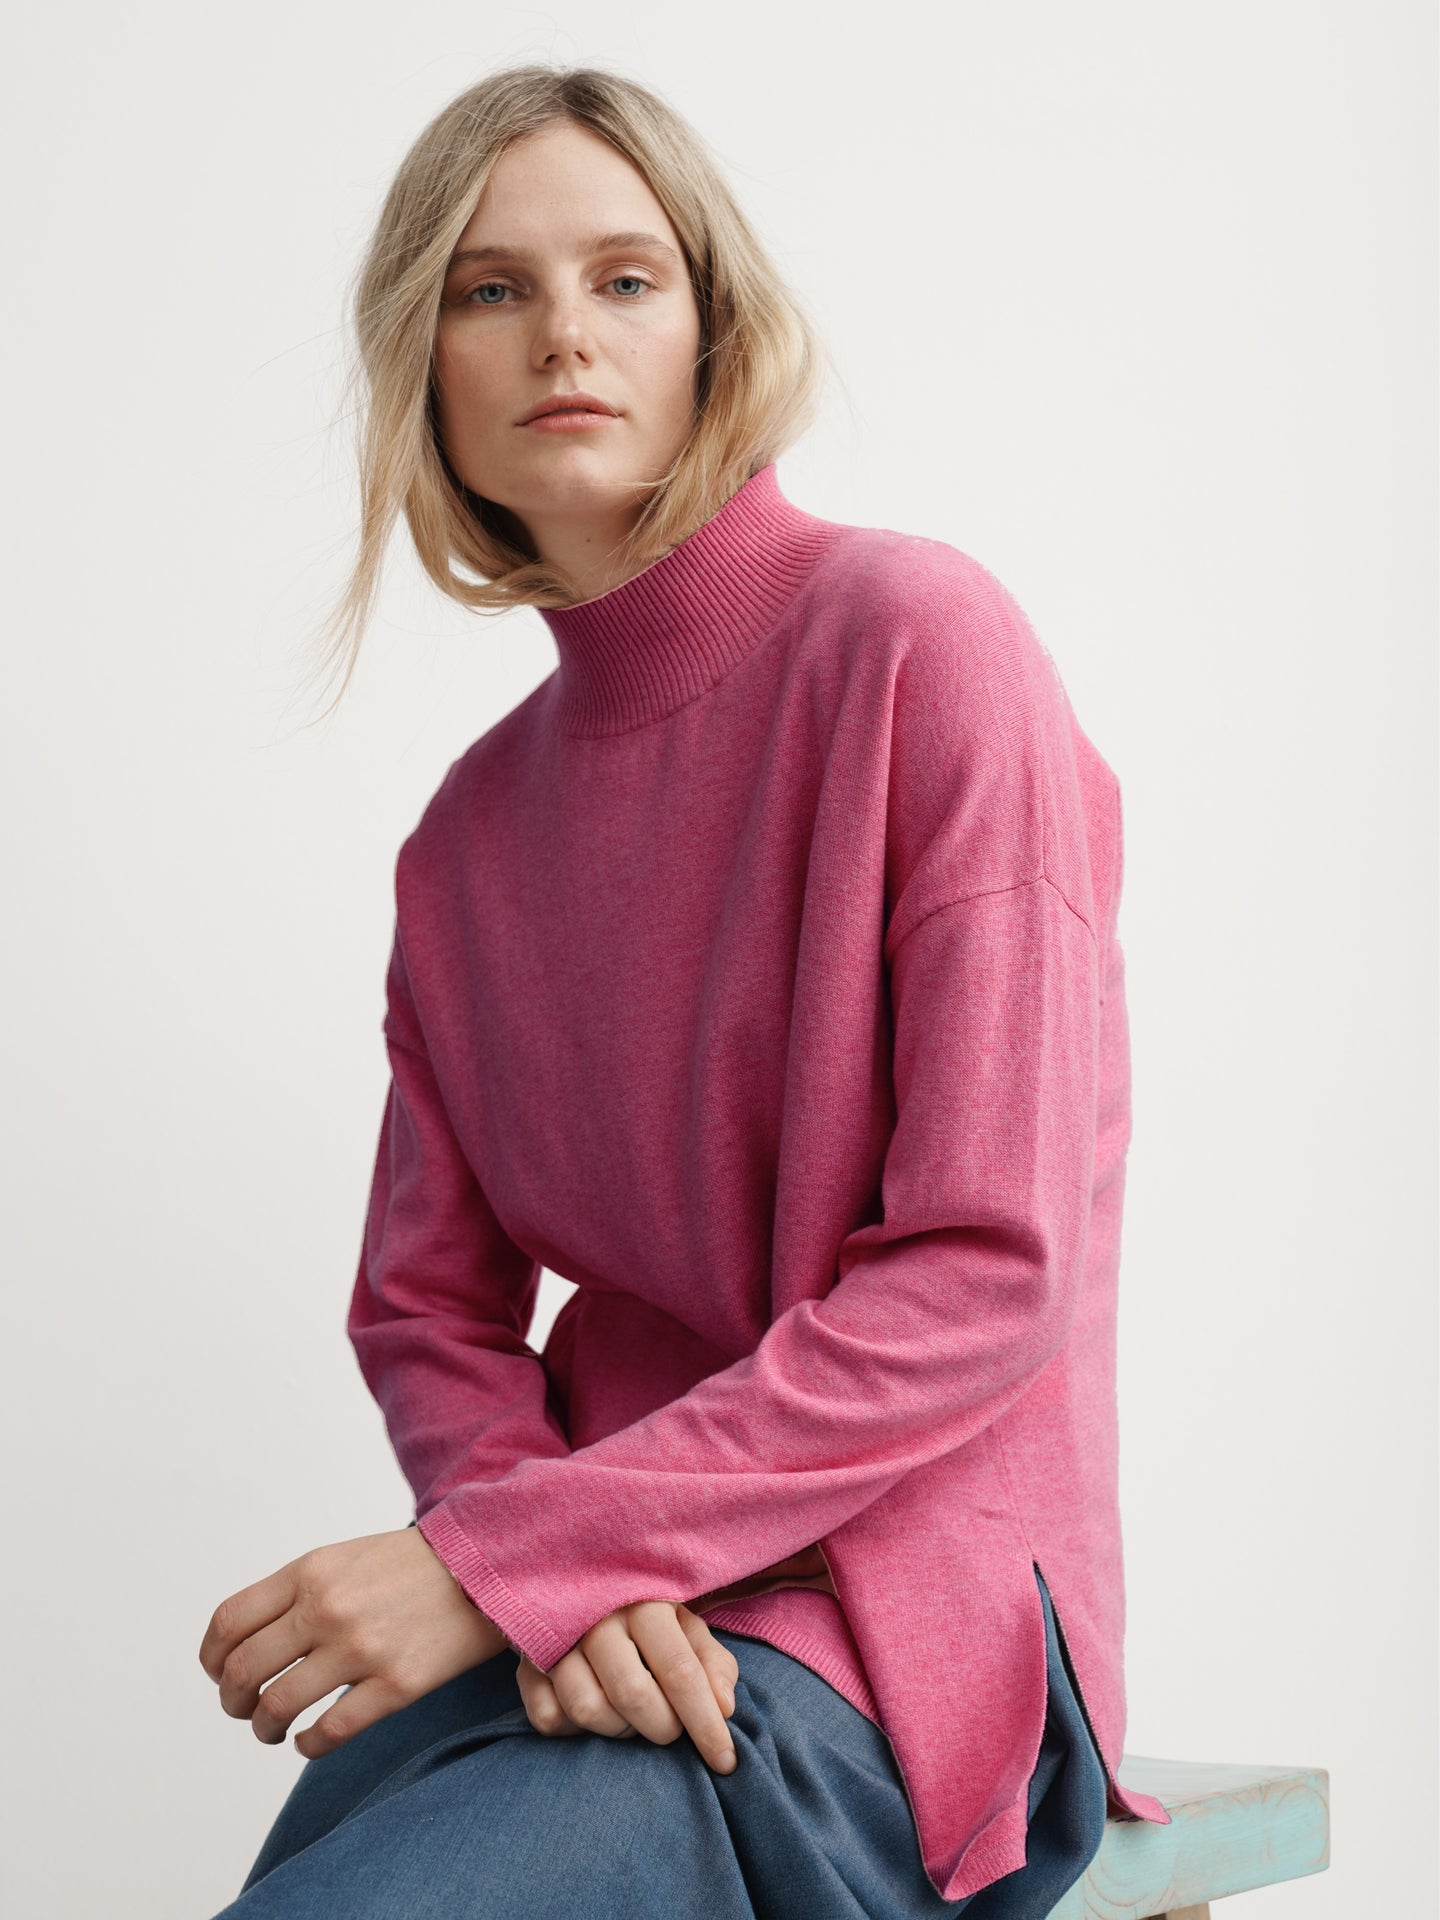 Rowan cotton cashmere high neck sweater hot pink